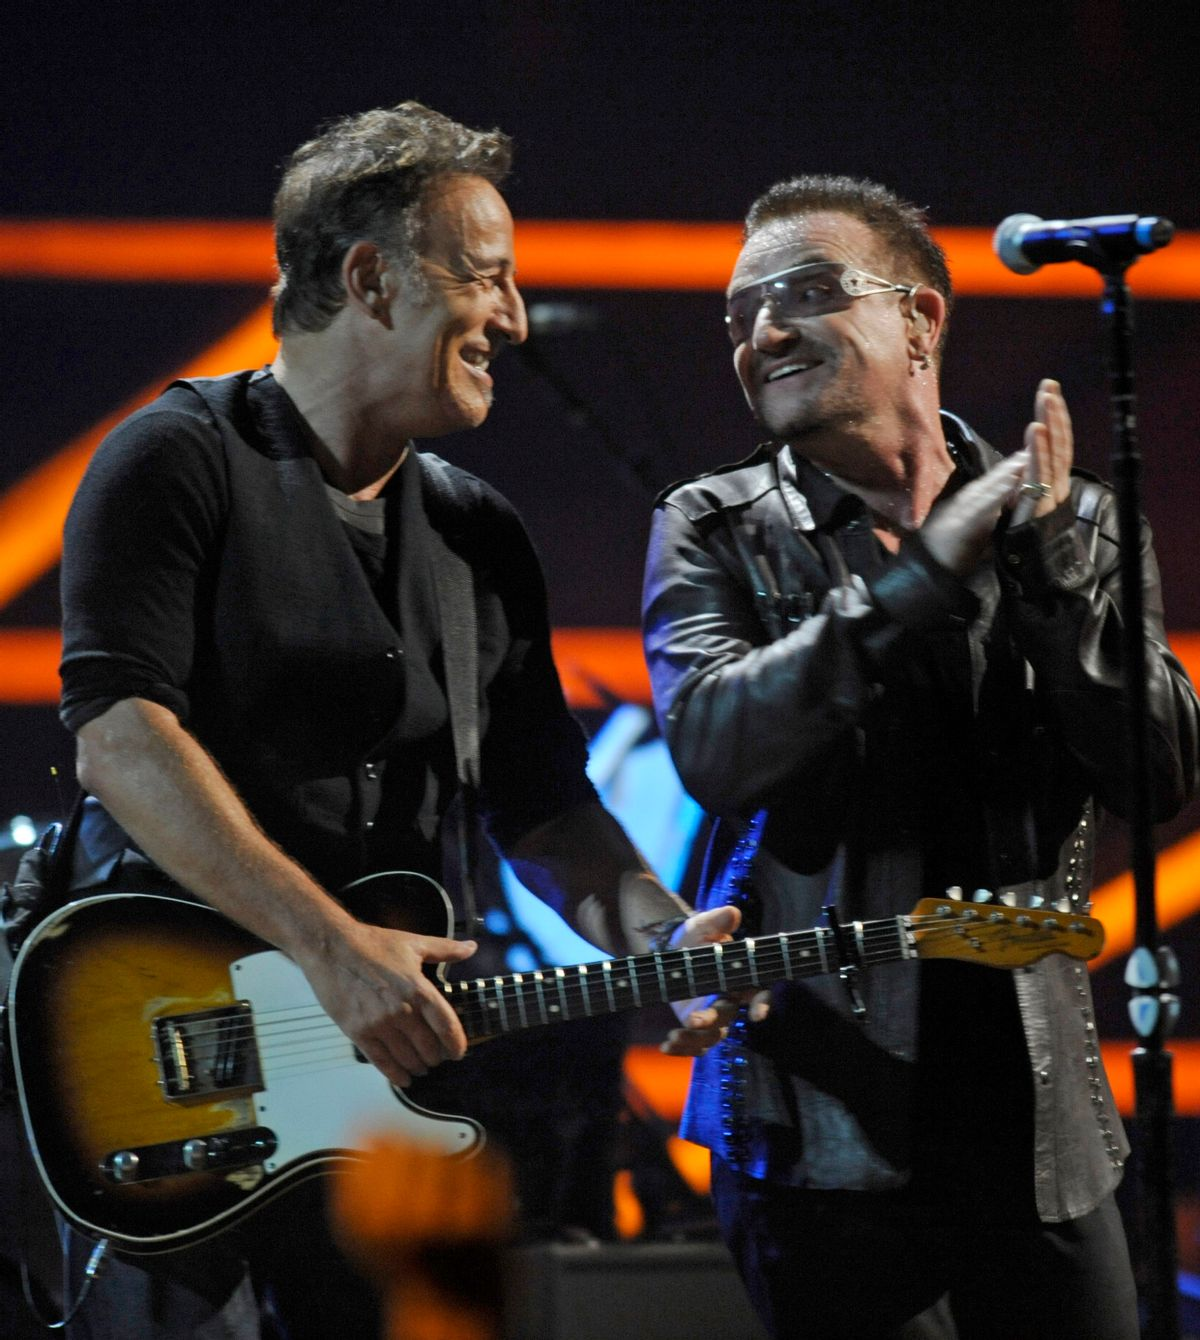 """FILE - In this Oct. 30, 2009 file photo, Bono, right, and Bruce Springsteen perform at the 25th Anniversary Rock & Roll Hall of Fame concert at Madison Square Garden, in New York. Springsteen and Coldplay's Chris Martin will act as Bono at a concert Monday night, Dec. 1, 2014, in New York City. U2 announced on its website that the singers will perform at Duffy Square in Times Square alongside Kanye West and Carrie Underwood for """"U2 Minus 1 _ Live in New York Tonight."""" (AP Photo/Henny Ray Abrams, File)  (AP)"""